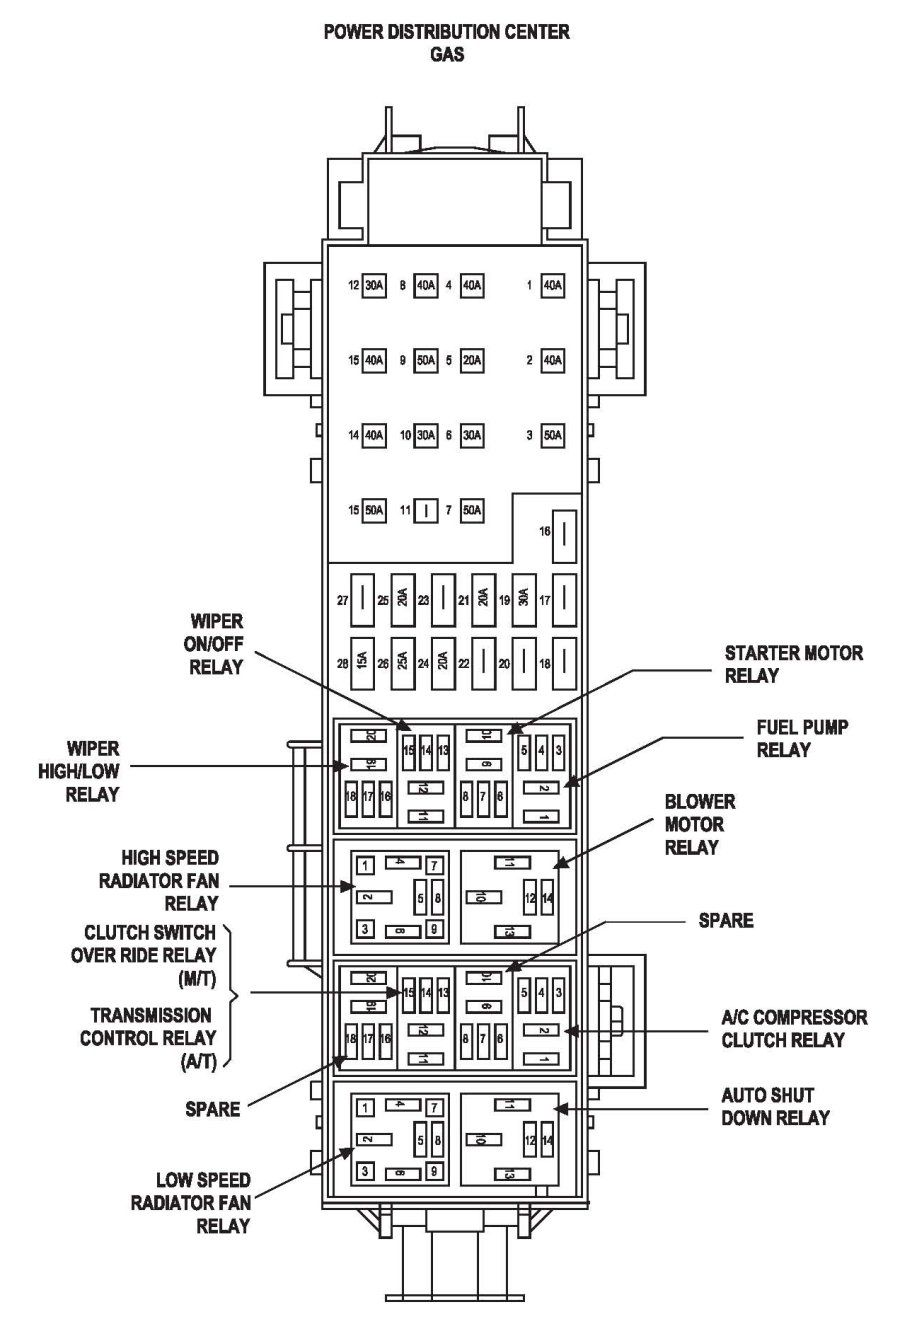 Jeep Liberty Fuse Box Diagram image details – Jeep Yj Fuse Box Schematic